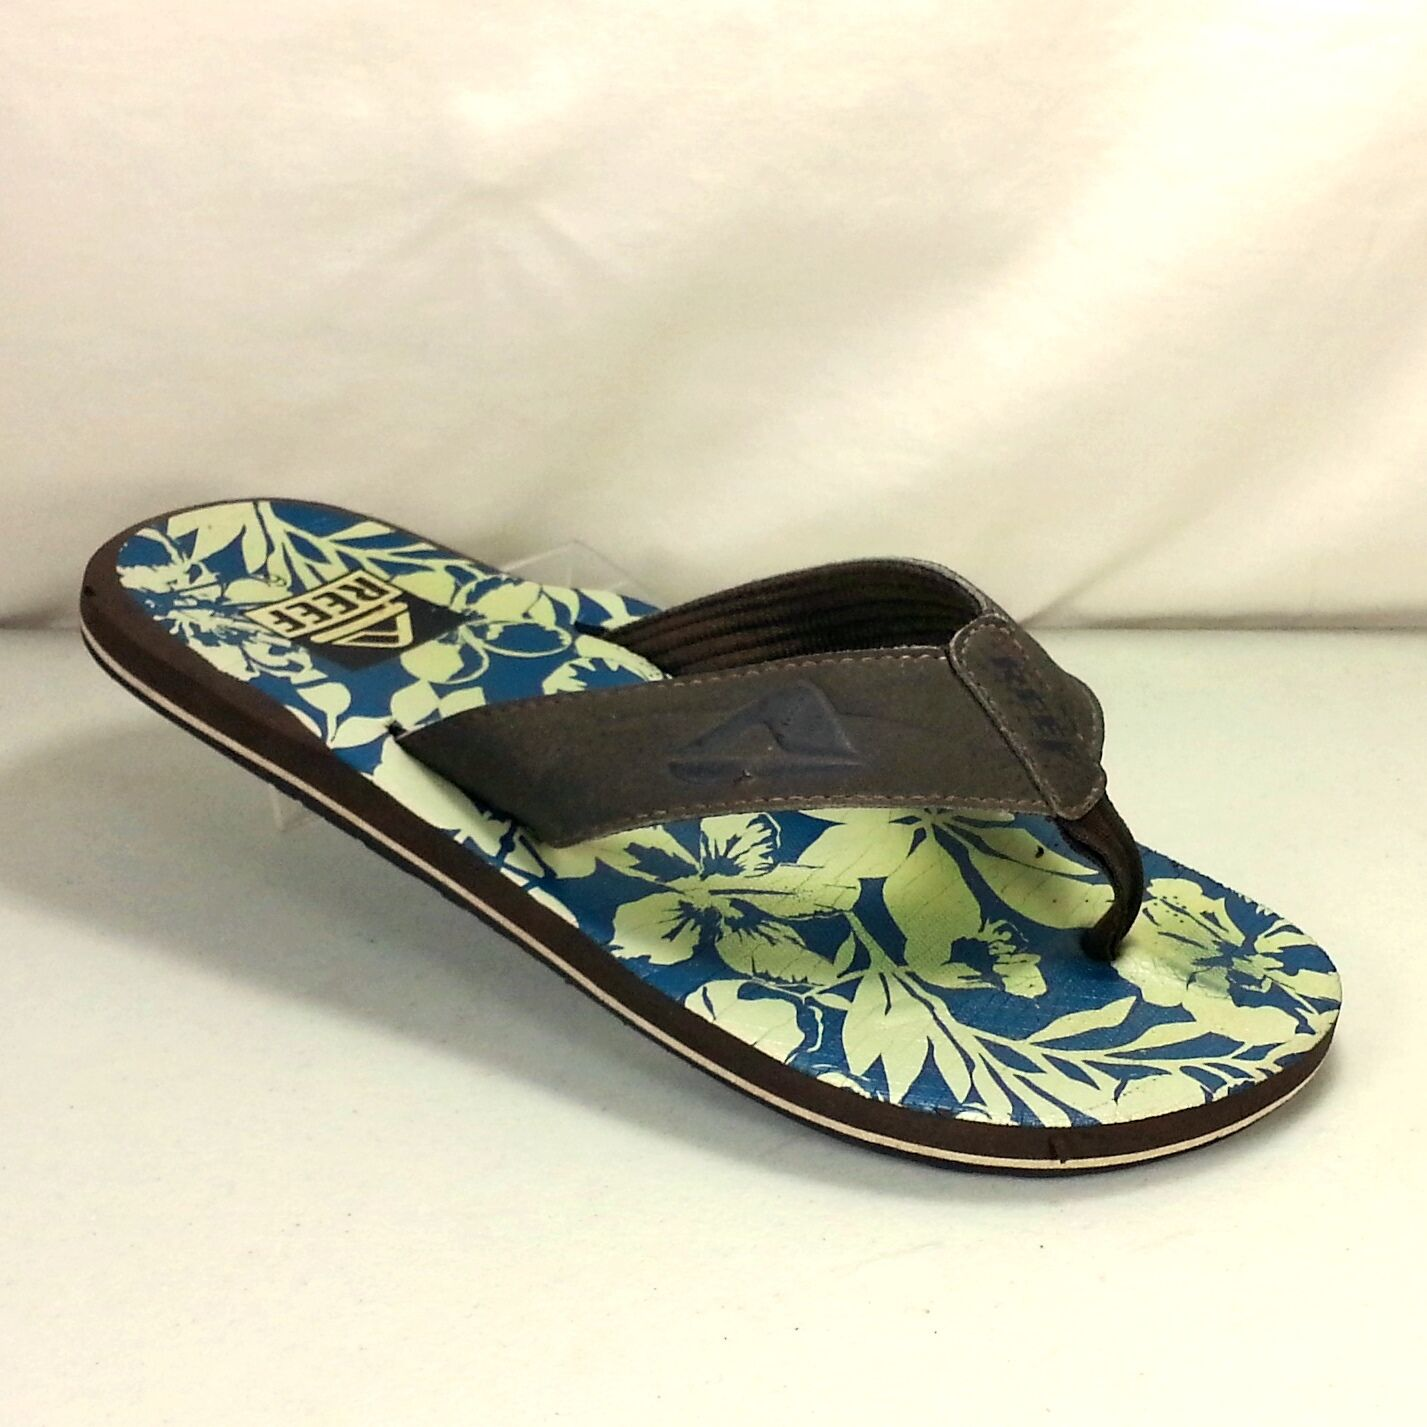 Women's Size Reef Flip Flops Sandals Size Women's 6 Blue Footbed With Green Floral Design c50412